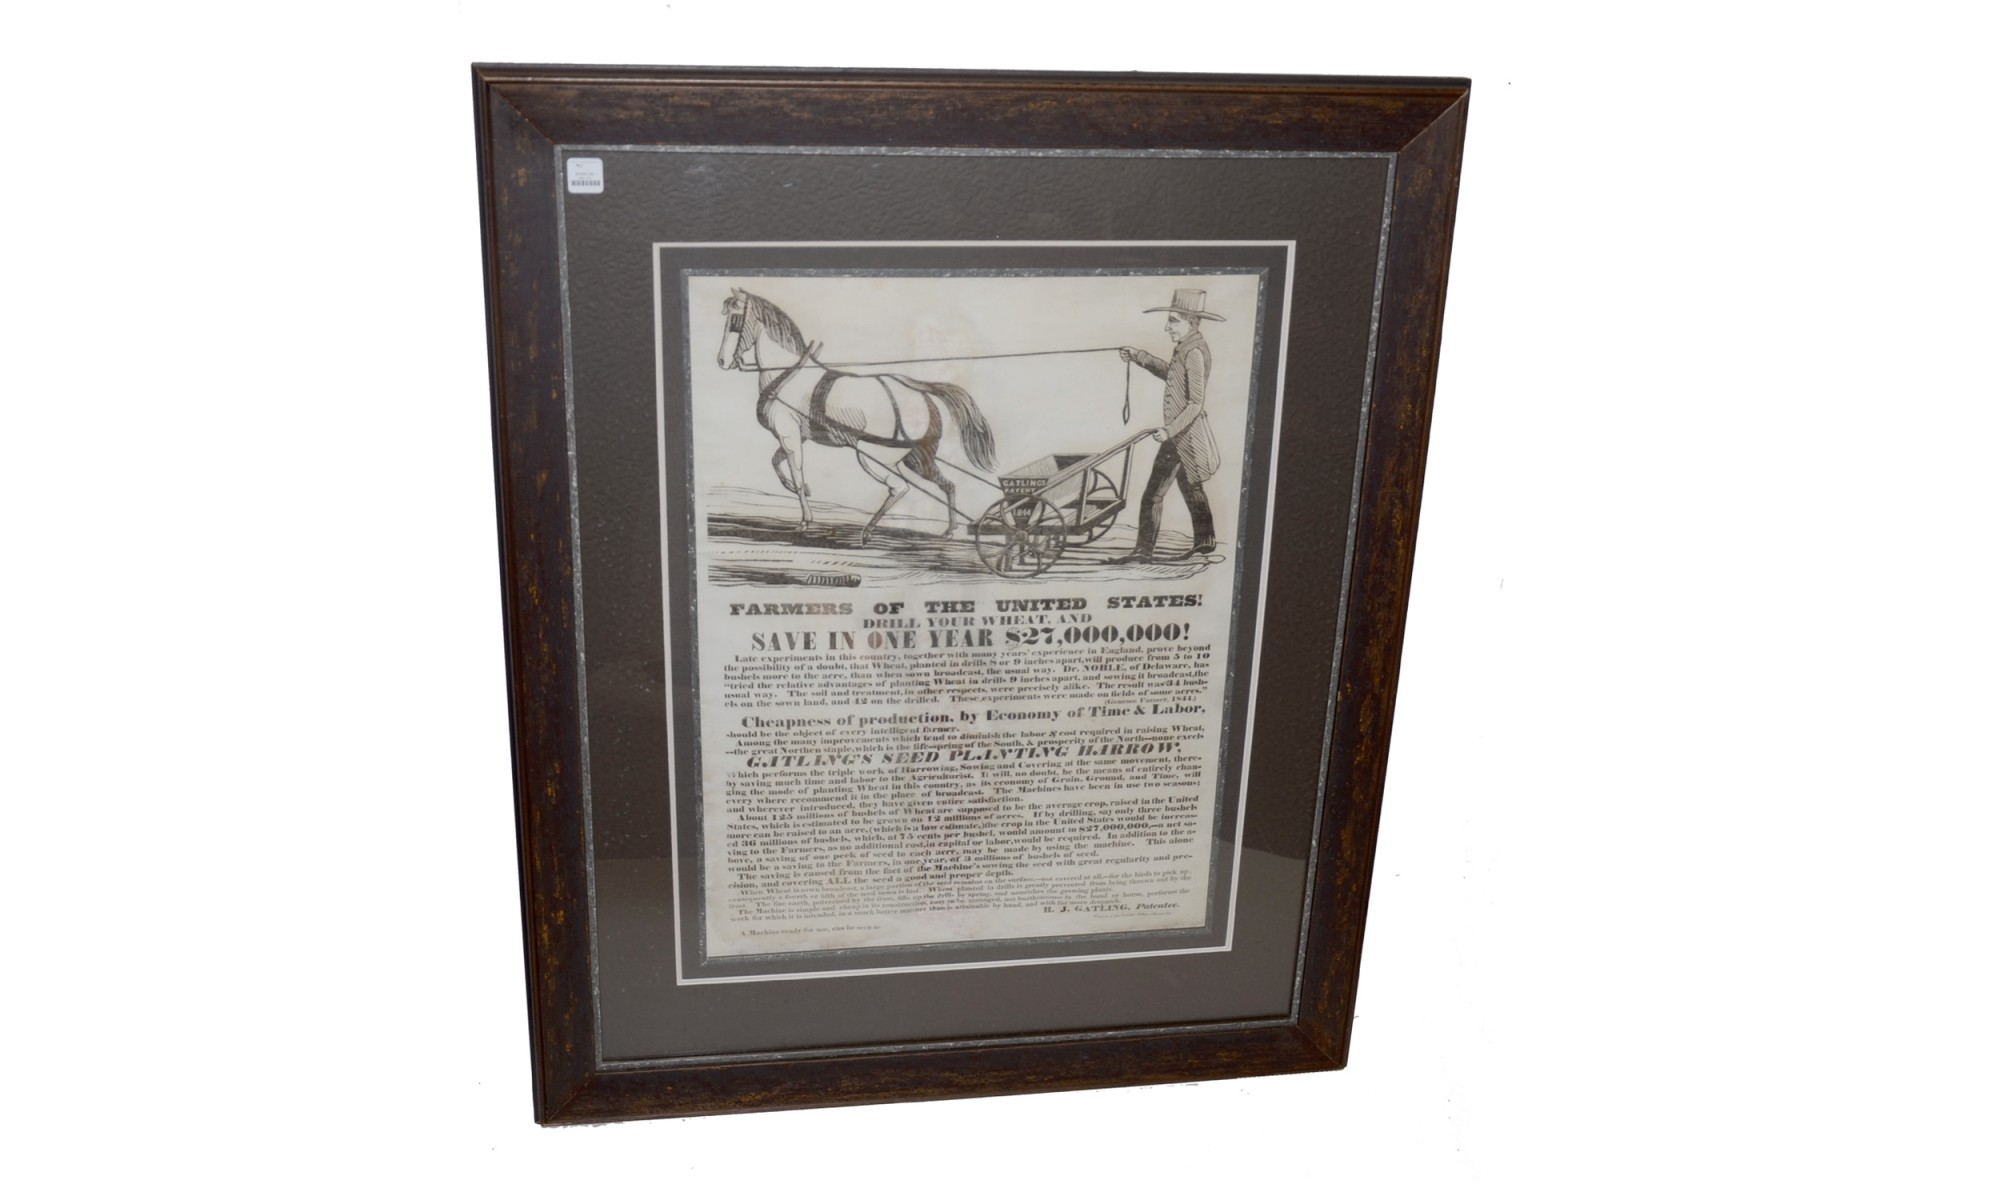 WONDERFUL 1844 GATLING ADVERTISING BROADSIDE